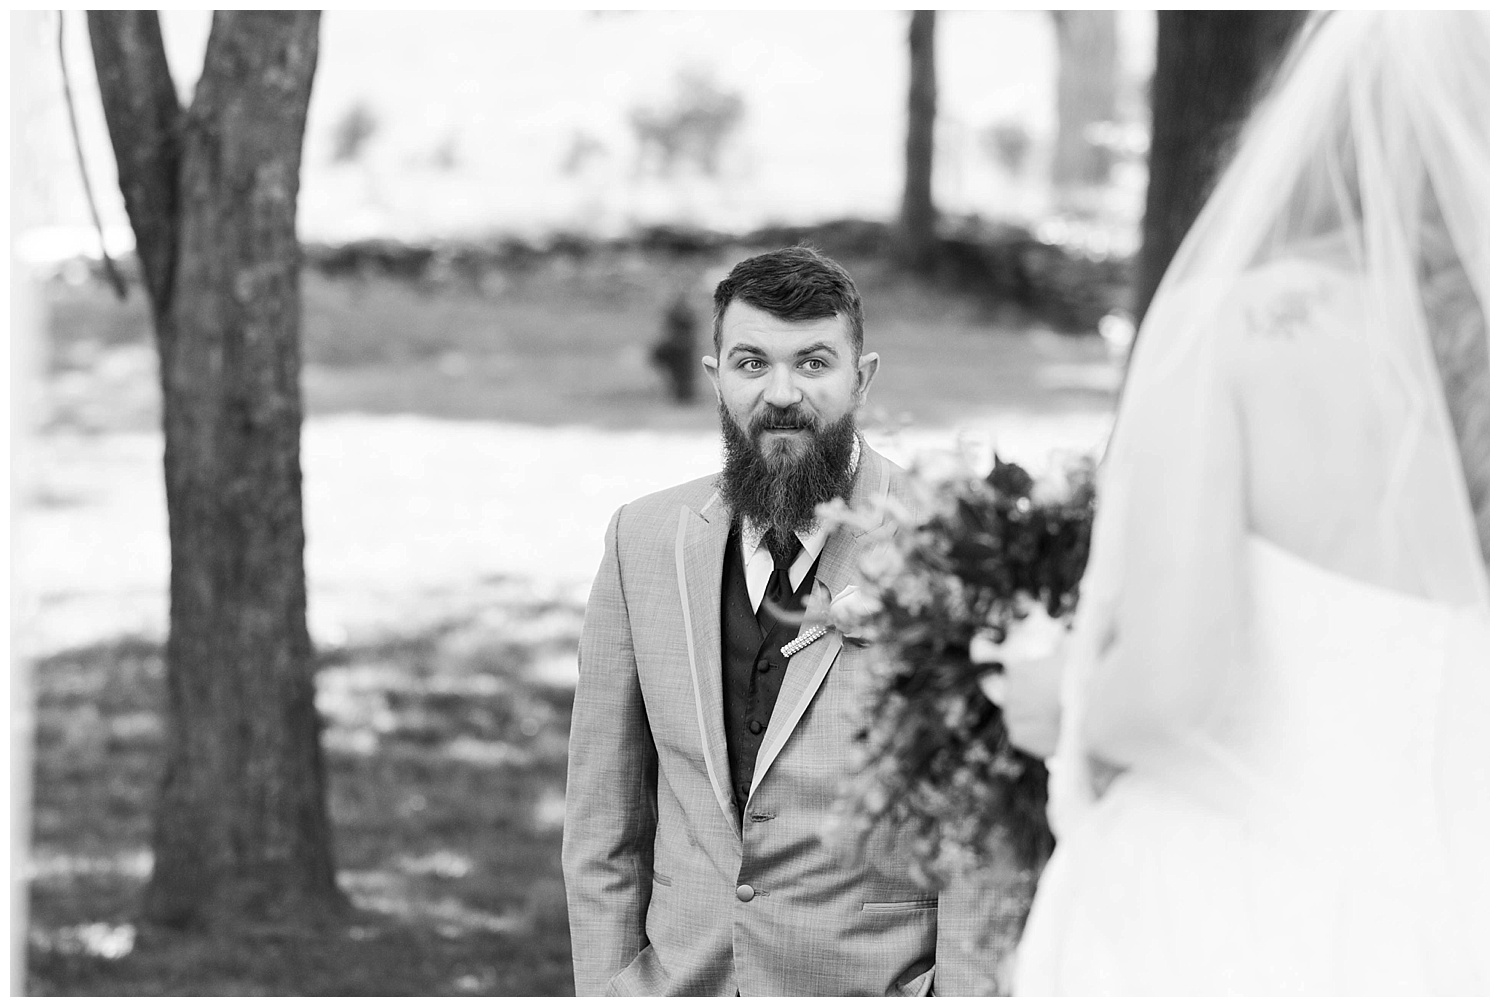 Nothing beats the face of a groom seeing his bride for the first time.